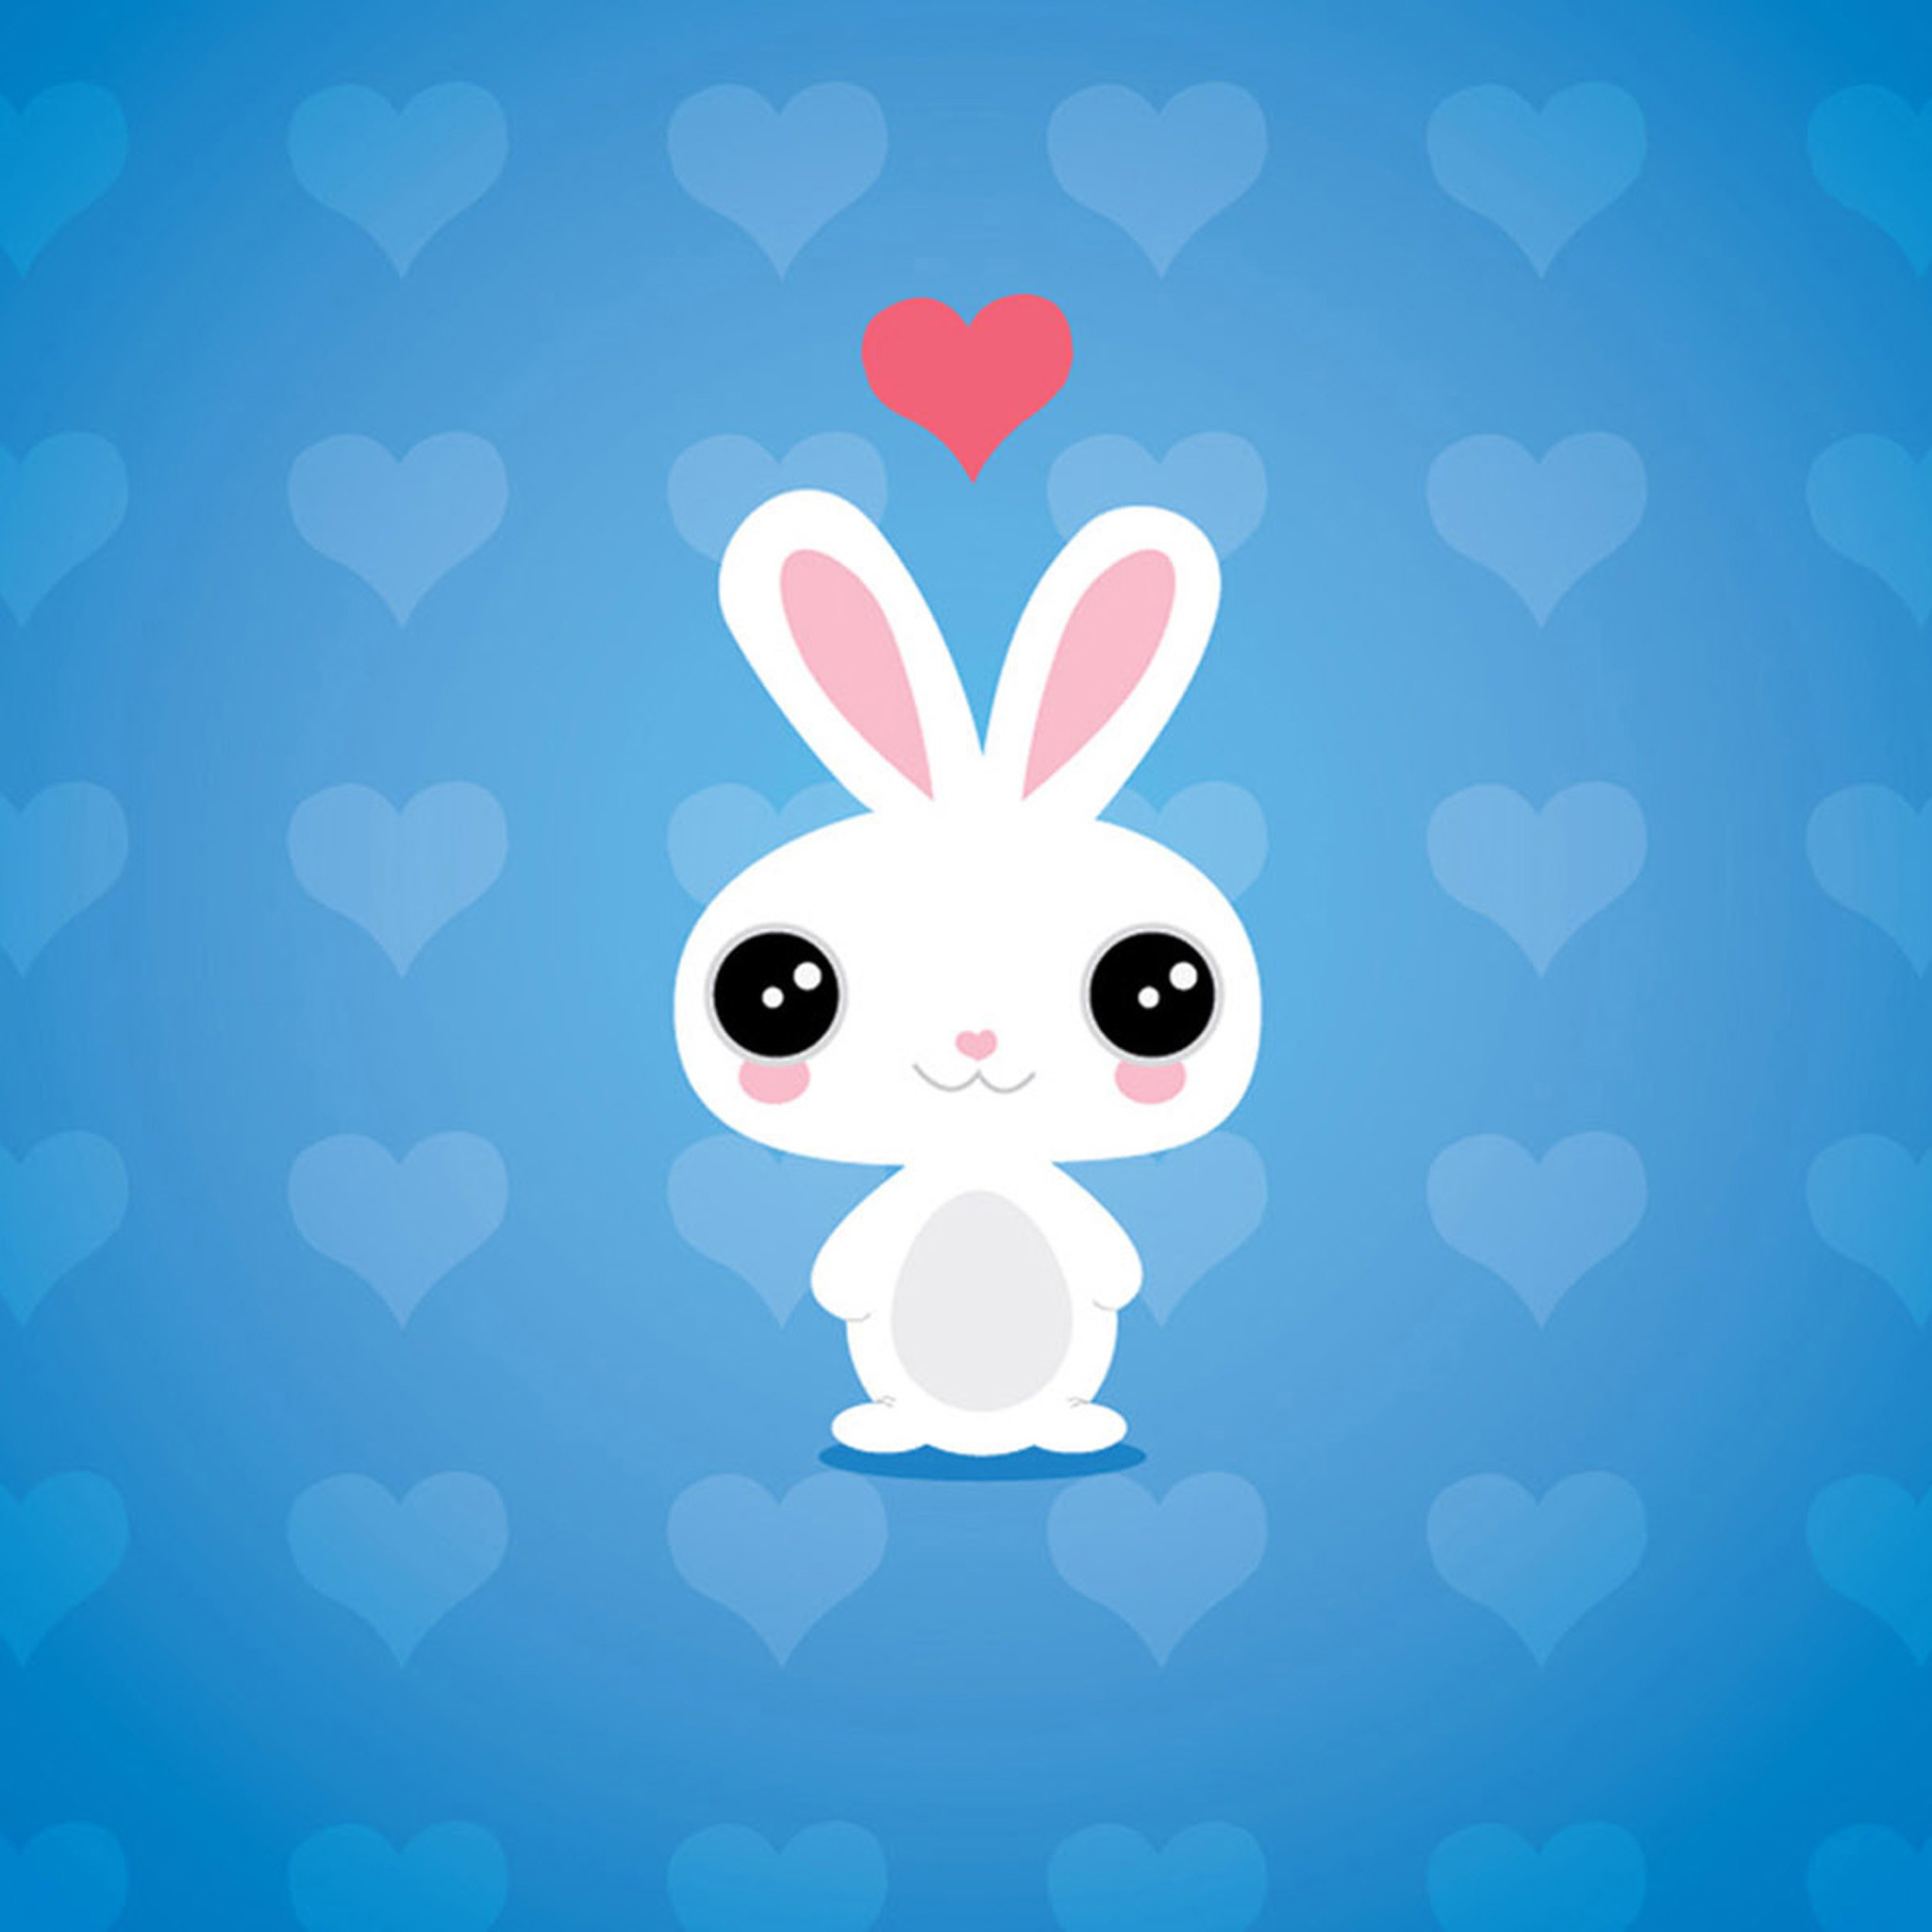 Wallpapers Cute 71 Background Pictures